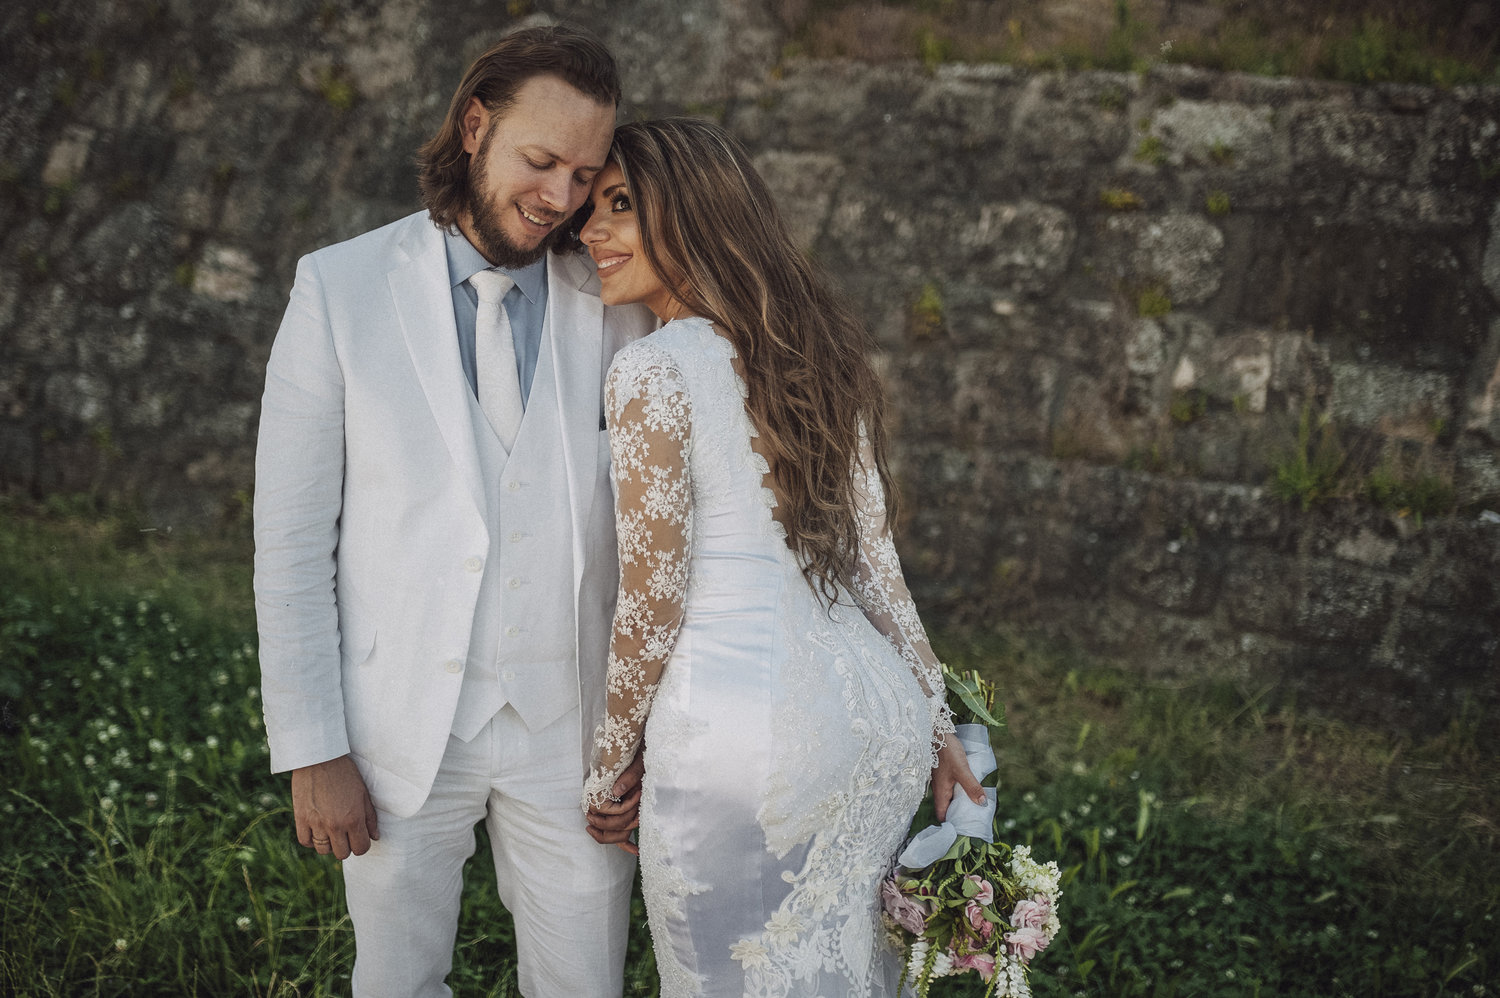 bride and groom at serbian jazz wedding with DIY wedding dress Aleksa and Mina Photography